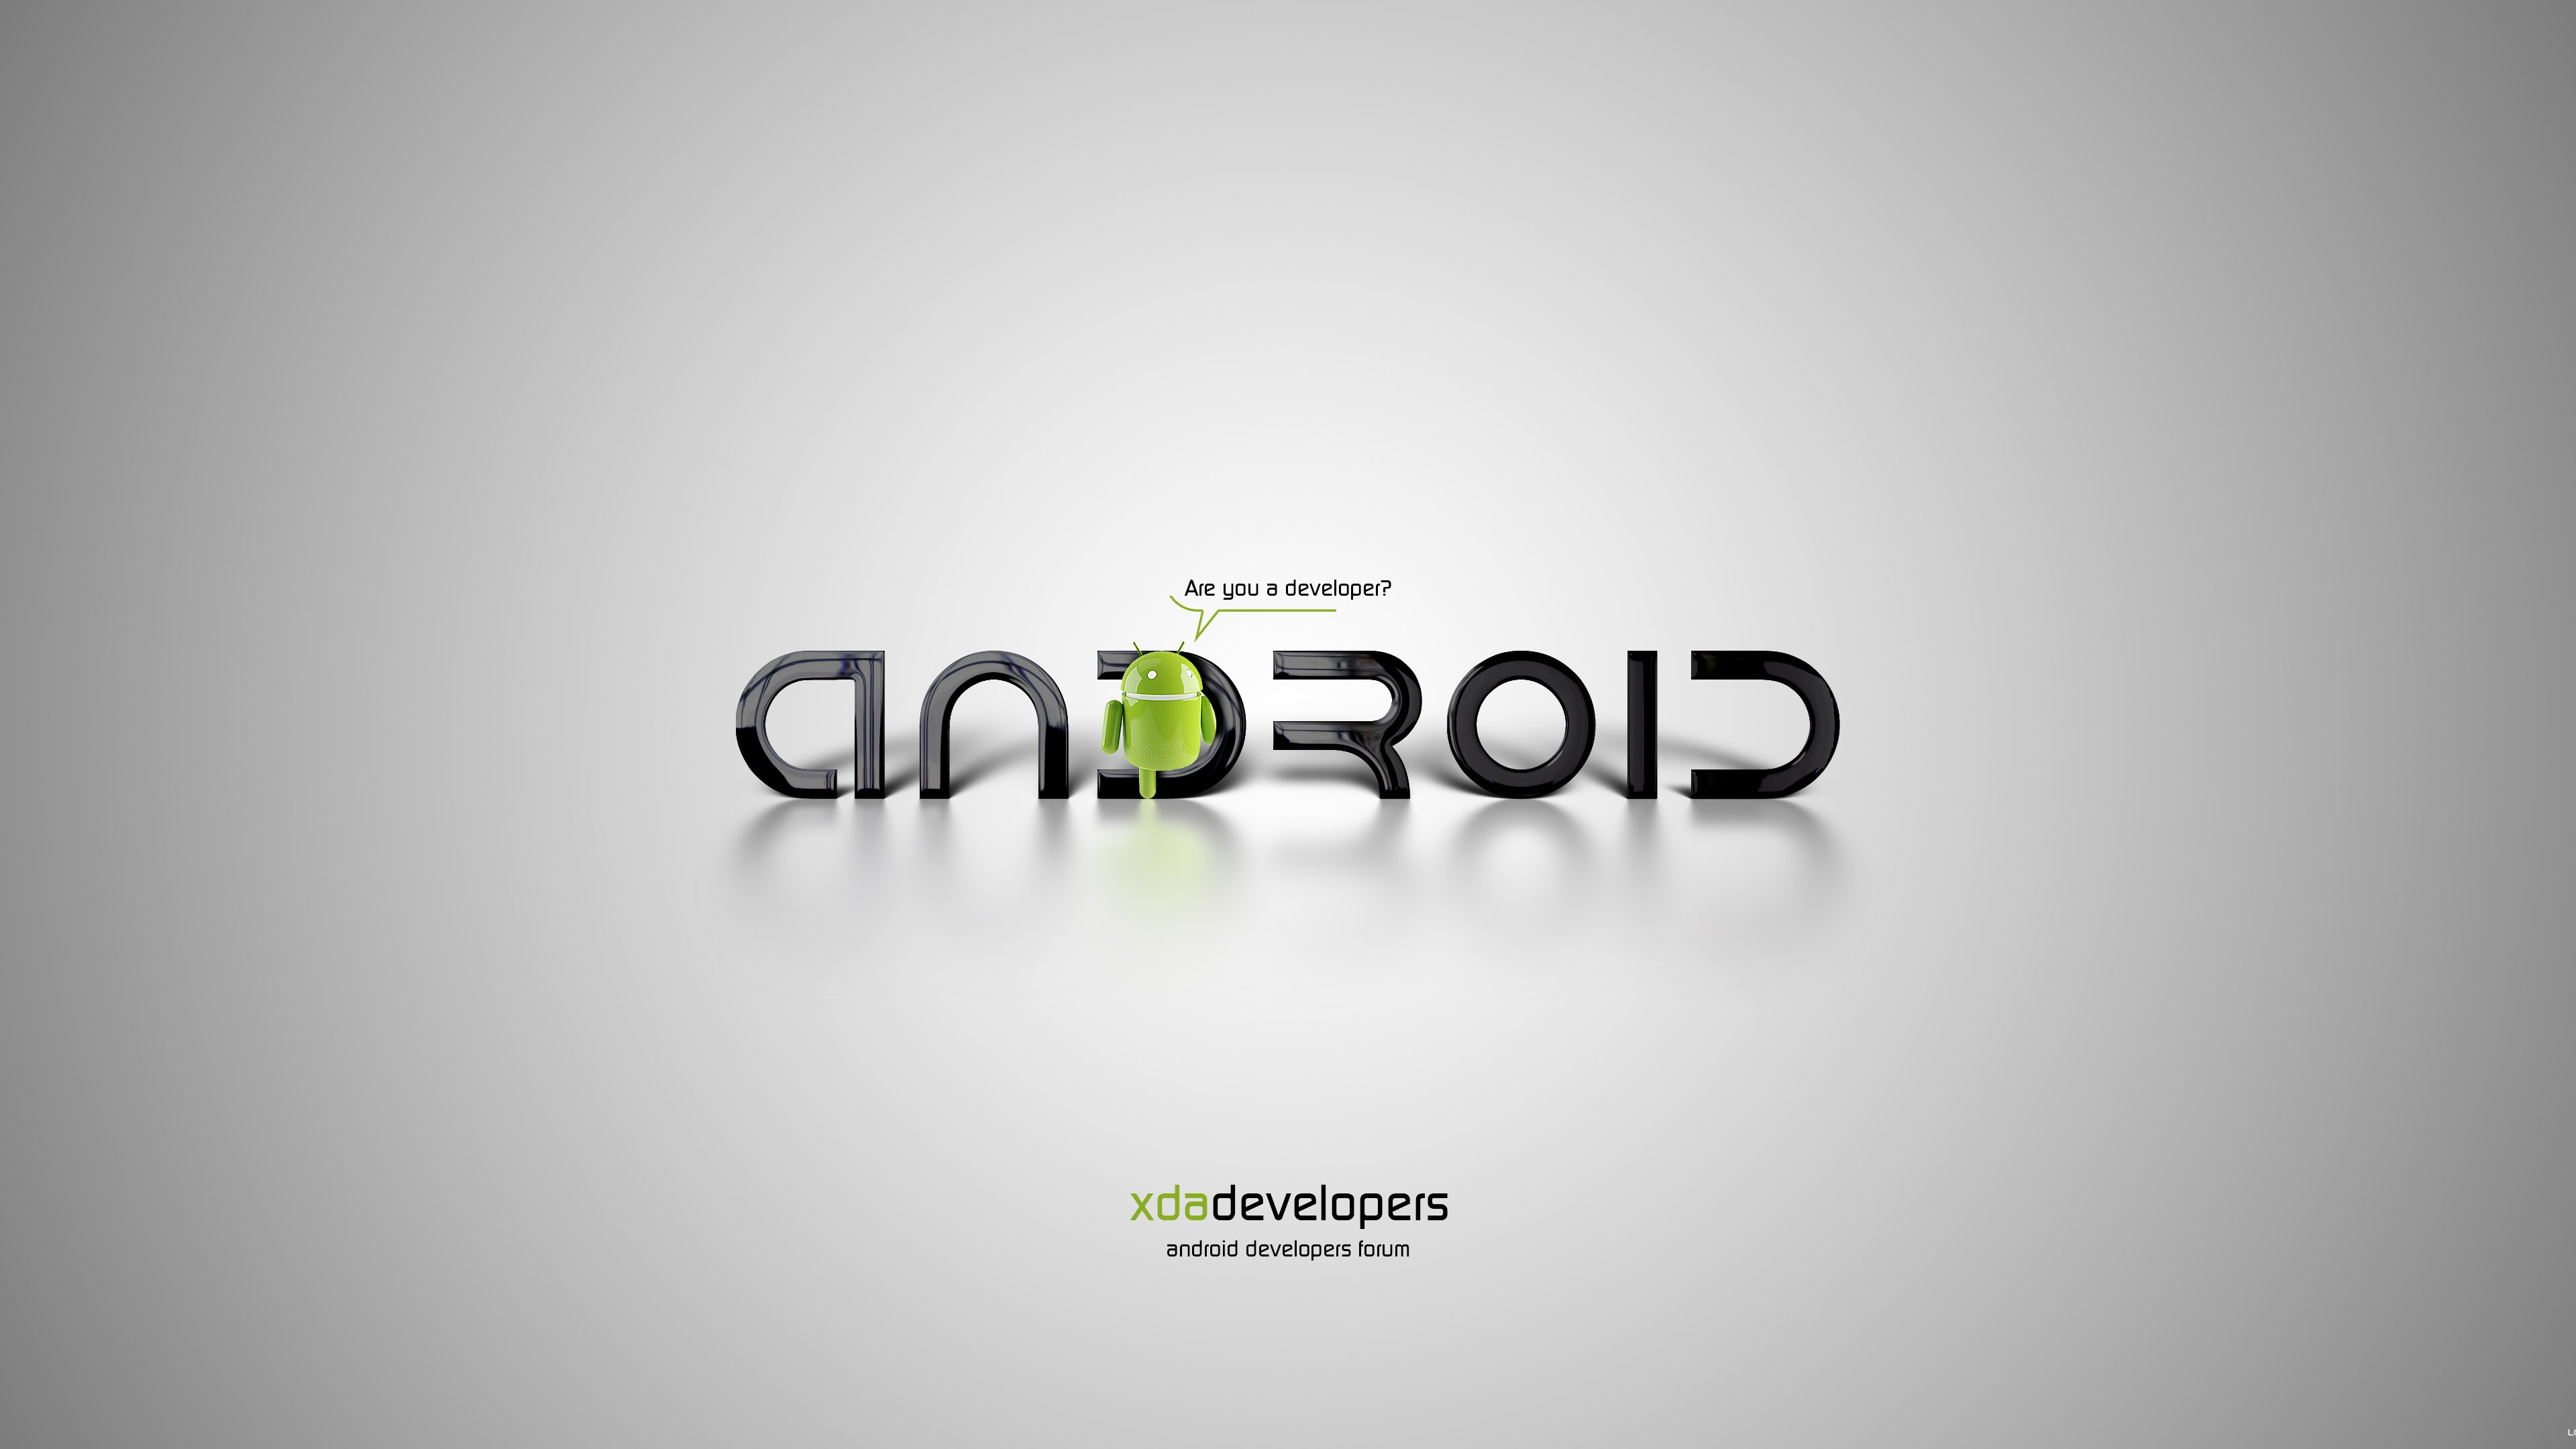 XDA Android Developers Forum Wallpapers HD Wallpapers 3840x2160